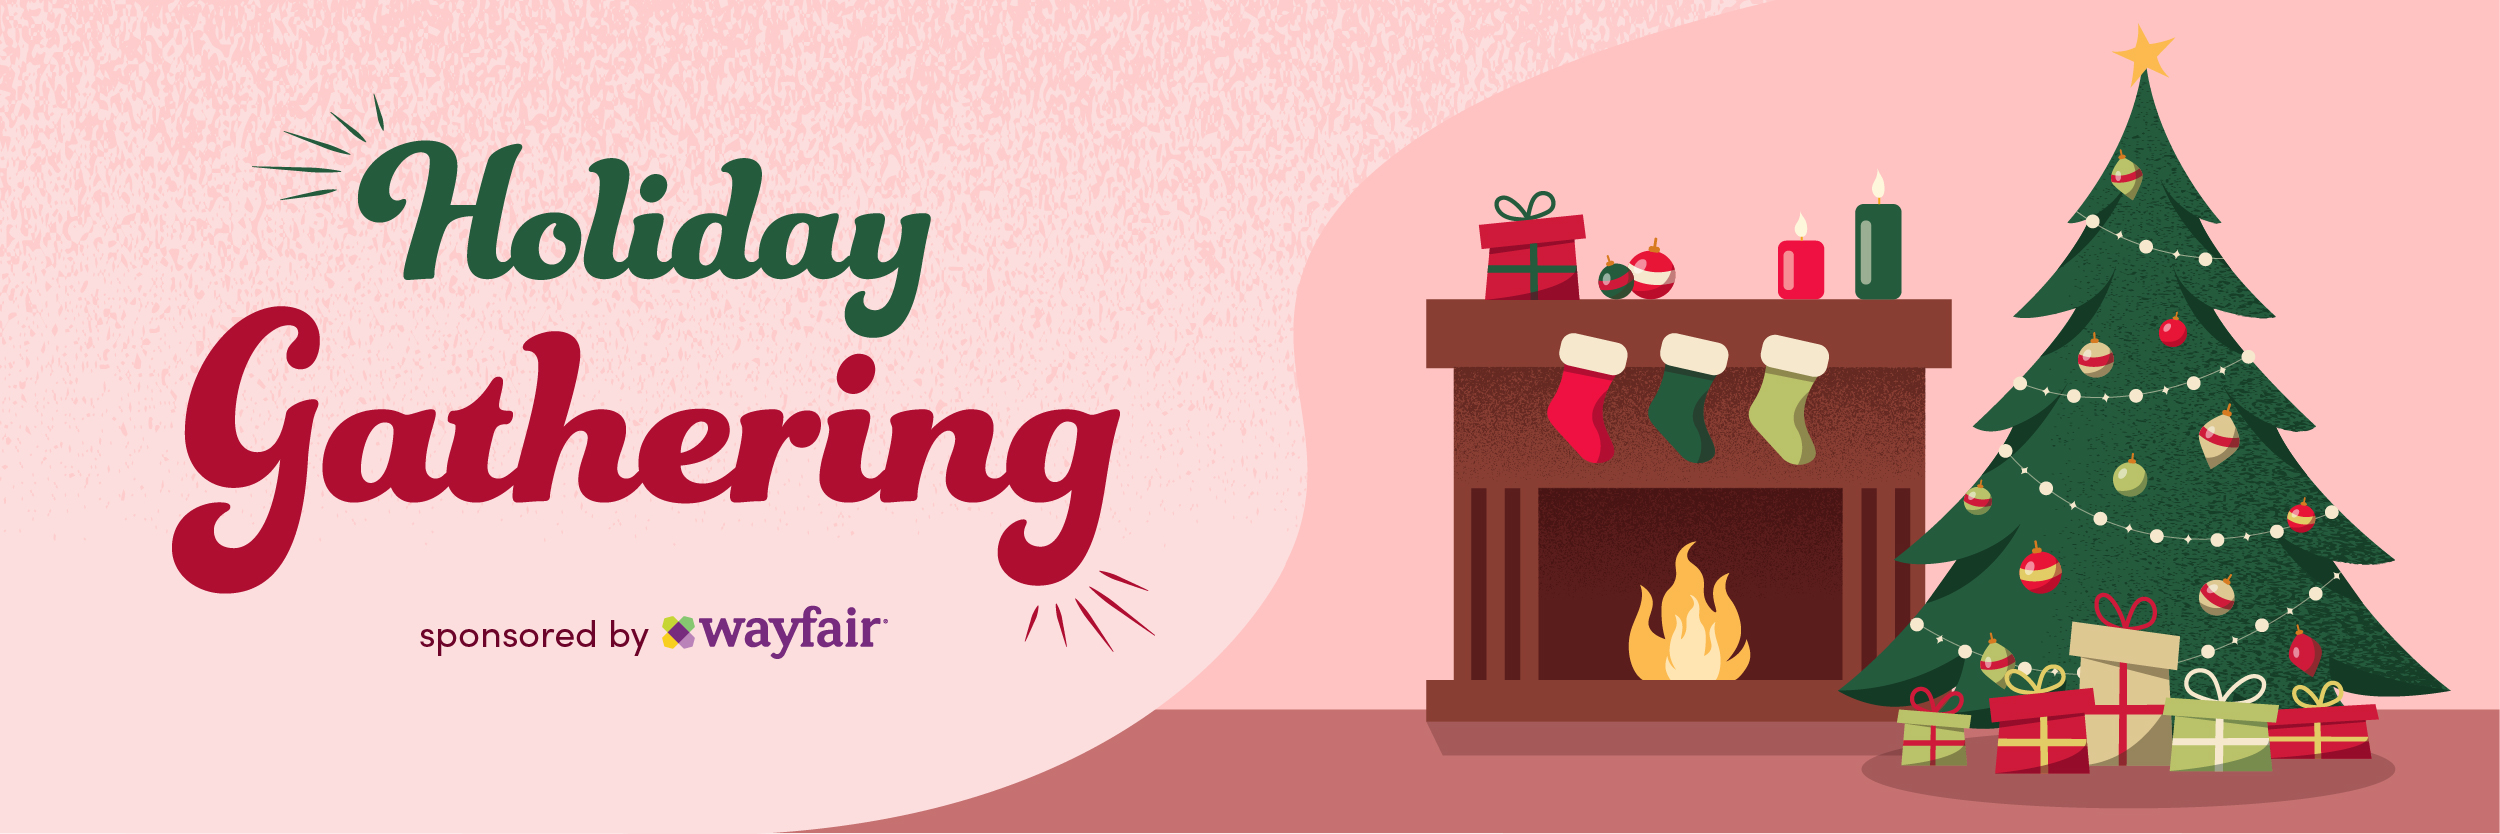 Holiday Gathering Banner.jpg